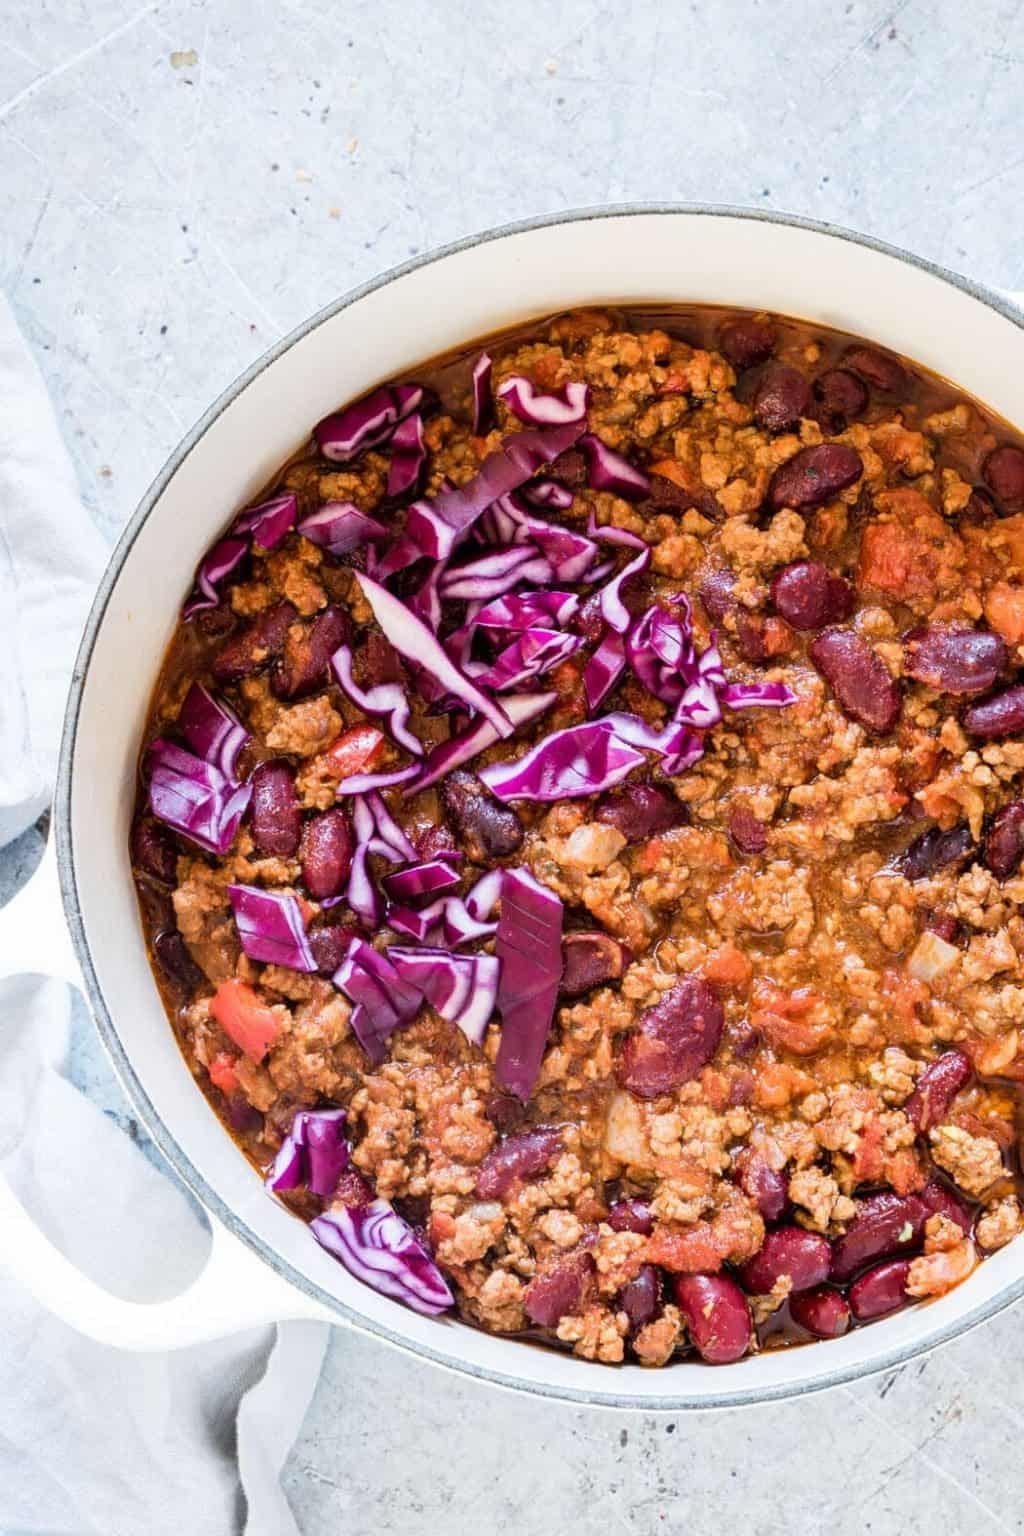 Instant Pot Chili by Recipes From A Pantry